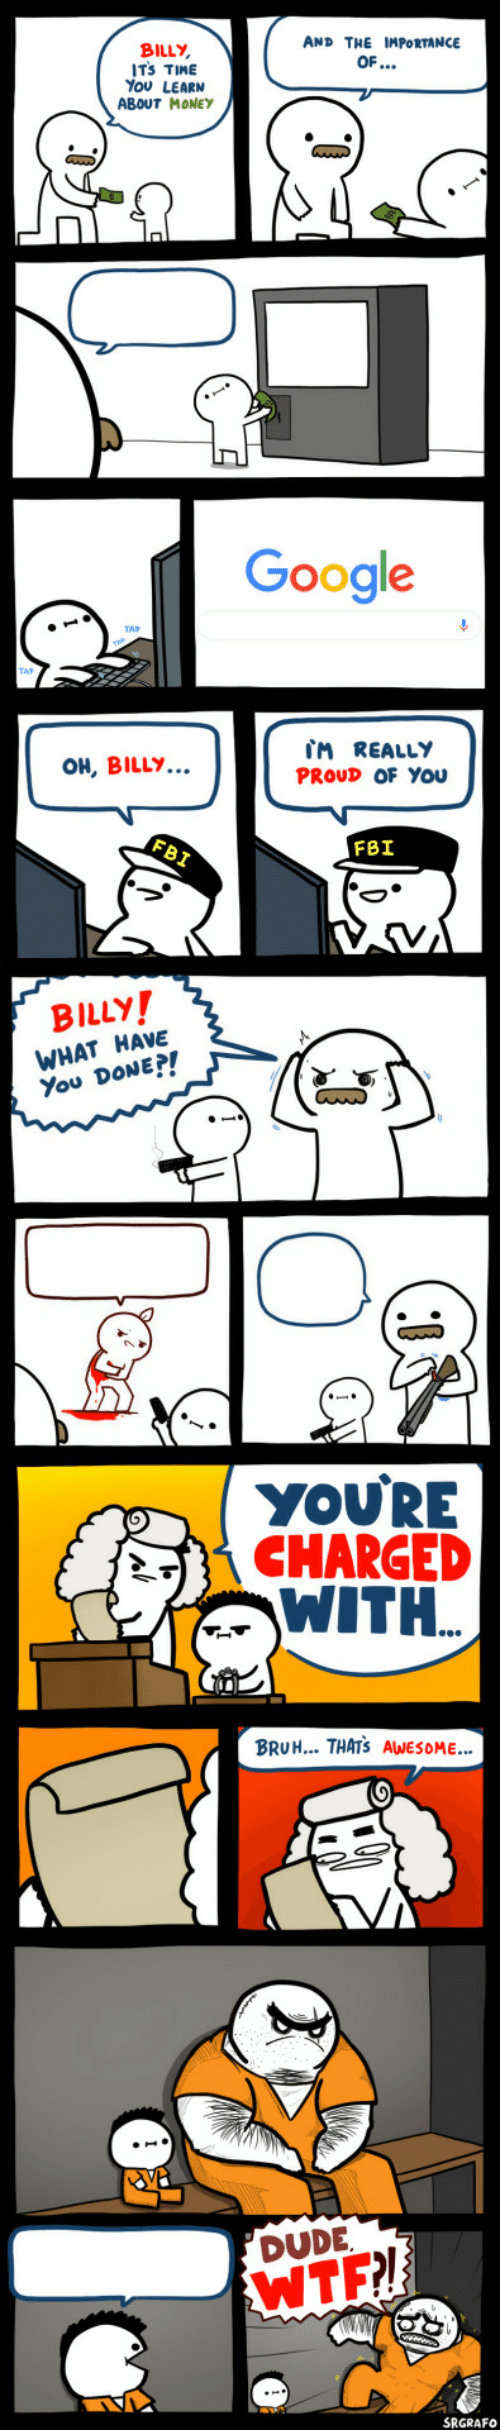 bruh: AND THE IMPORTANCE  BILLY,  ITS TIME  You LEARN  ABOUT MONEYy  OF...  Google  IM REALLY  PROUD OF YOu  OH, BILLY...  FBI  FBI  BILLY!  WHAT HAVE  You DONE?!  YOU'RE  CHARGED  WITH.  BRUH... THATS AWESOME..  DUDE  WTF!  SRGRAFO